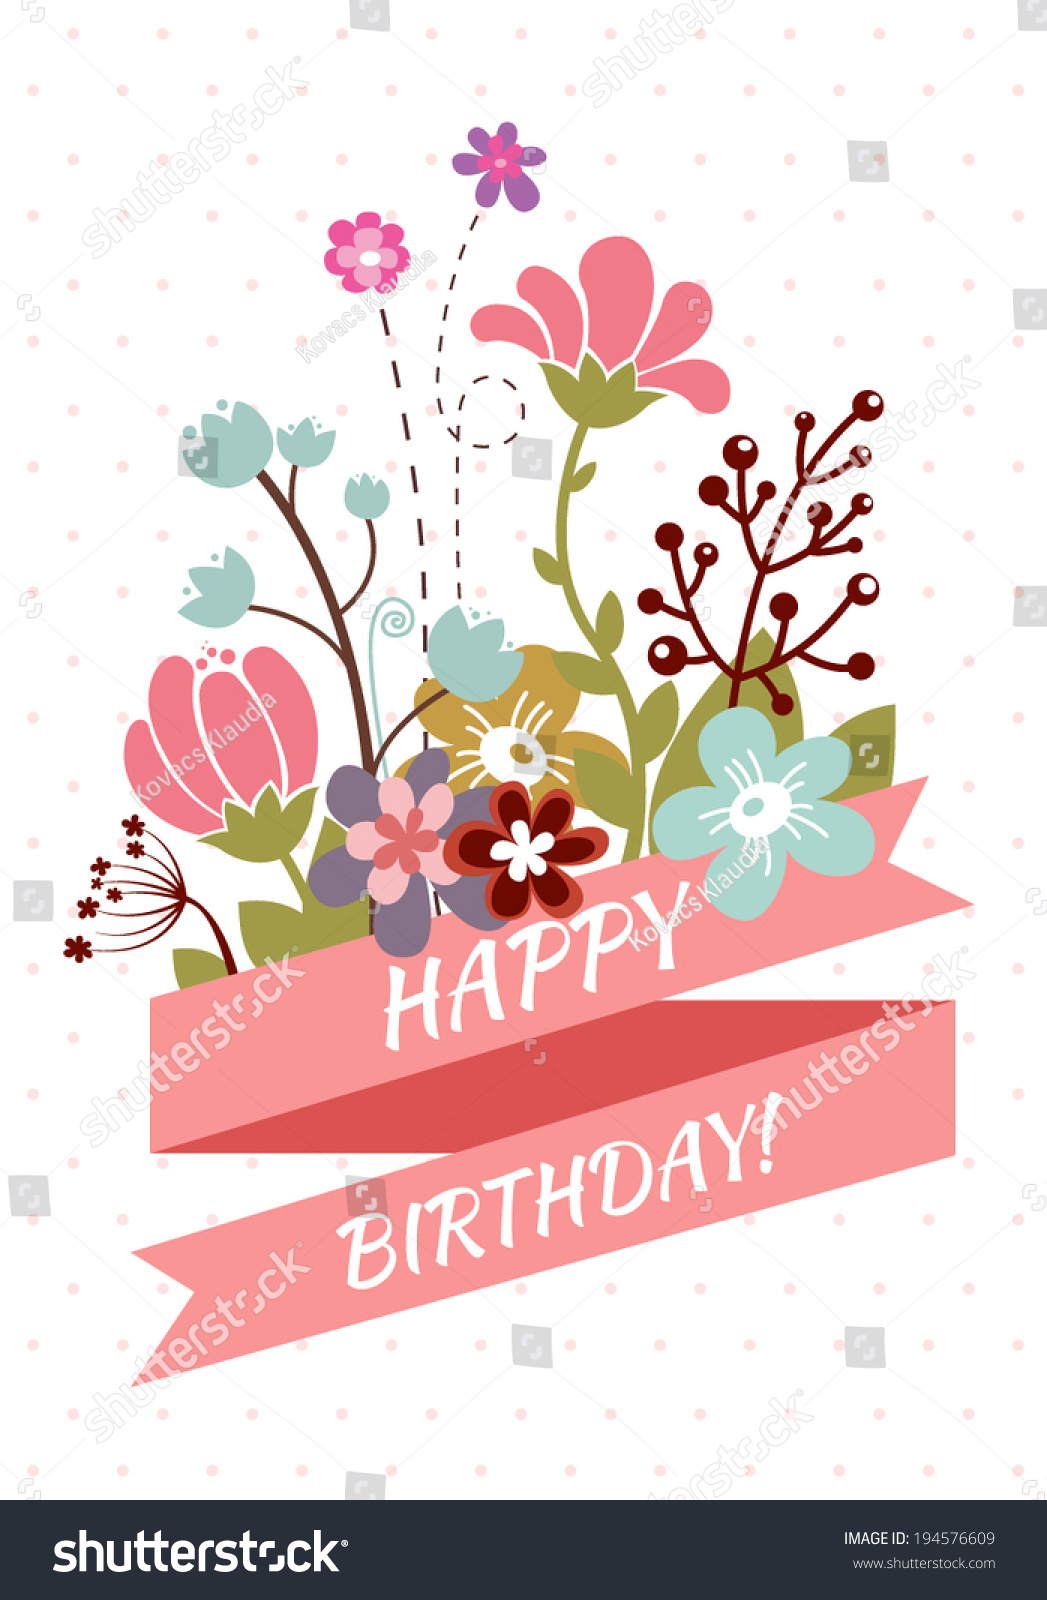 Happy Birthday Greeting Card Beautiful Vintage Stock Vector Royalty Free 194576609